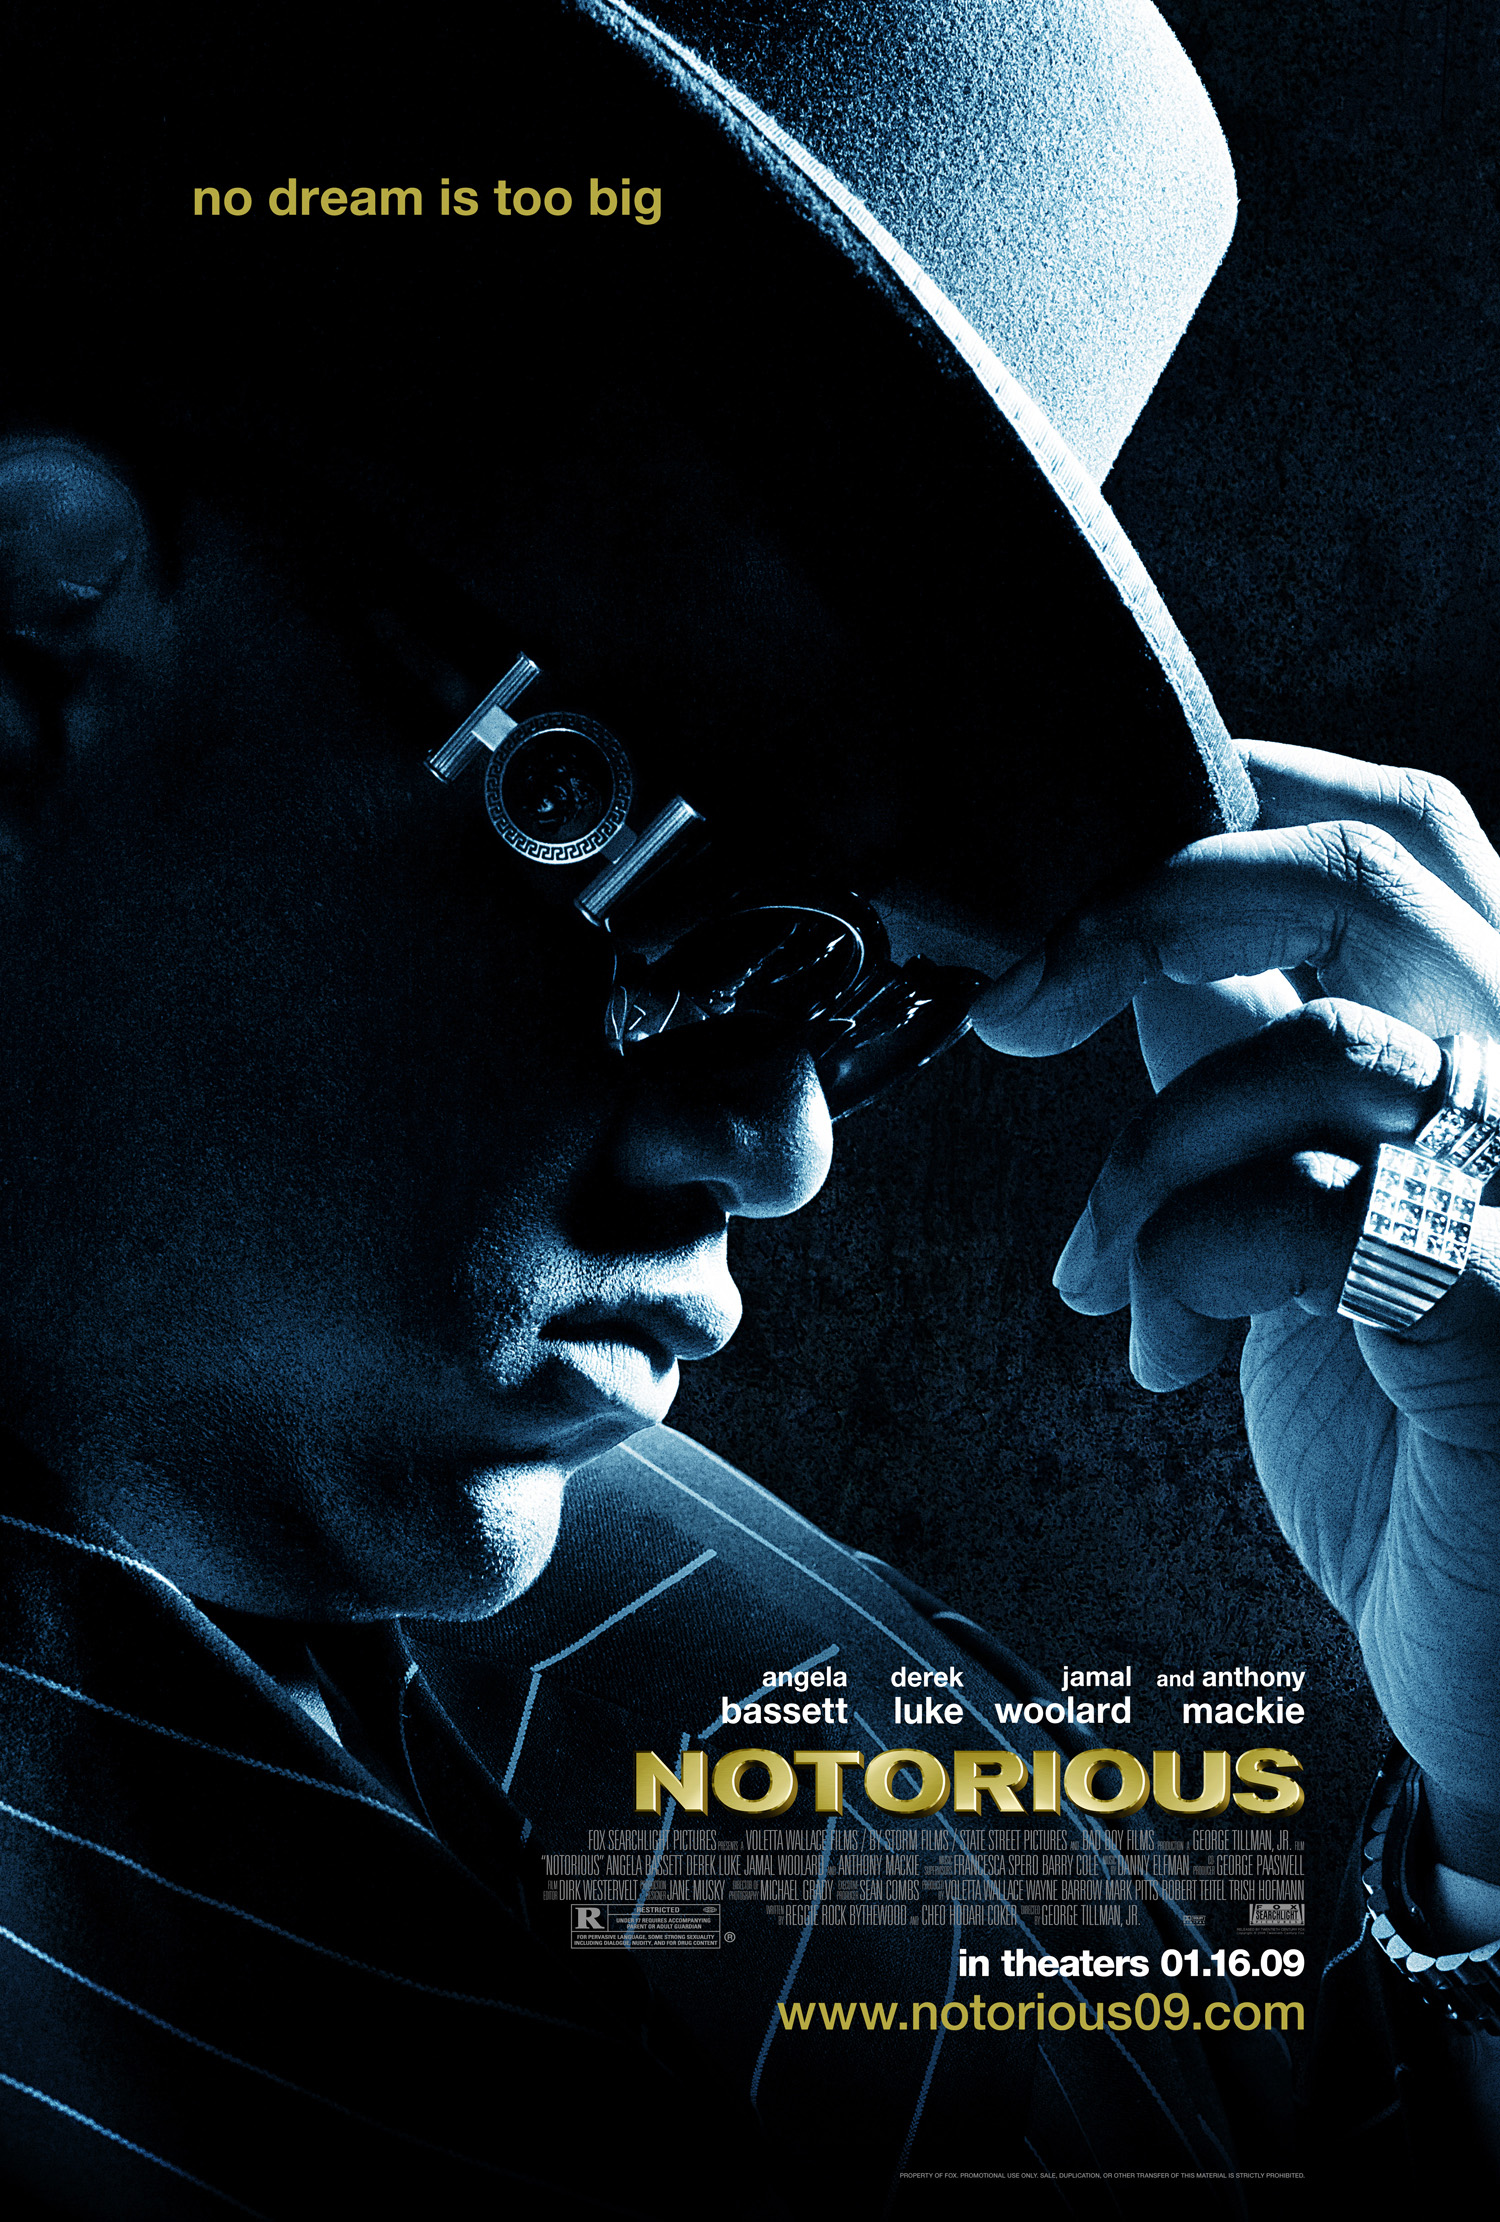 movies: Notorious (2009) and All Eyez on Me (2017